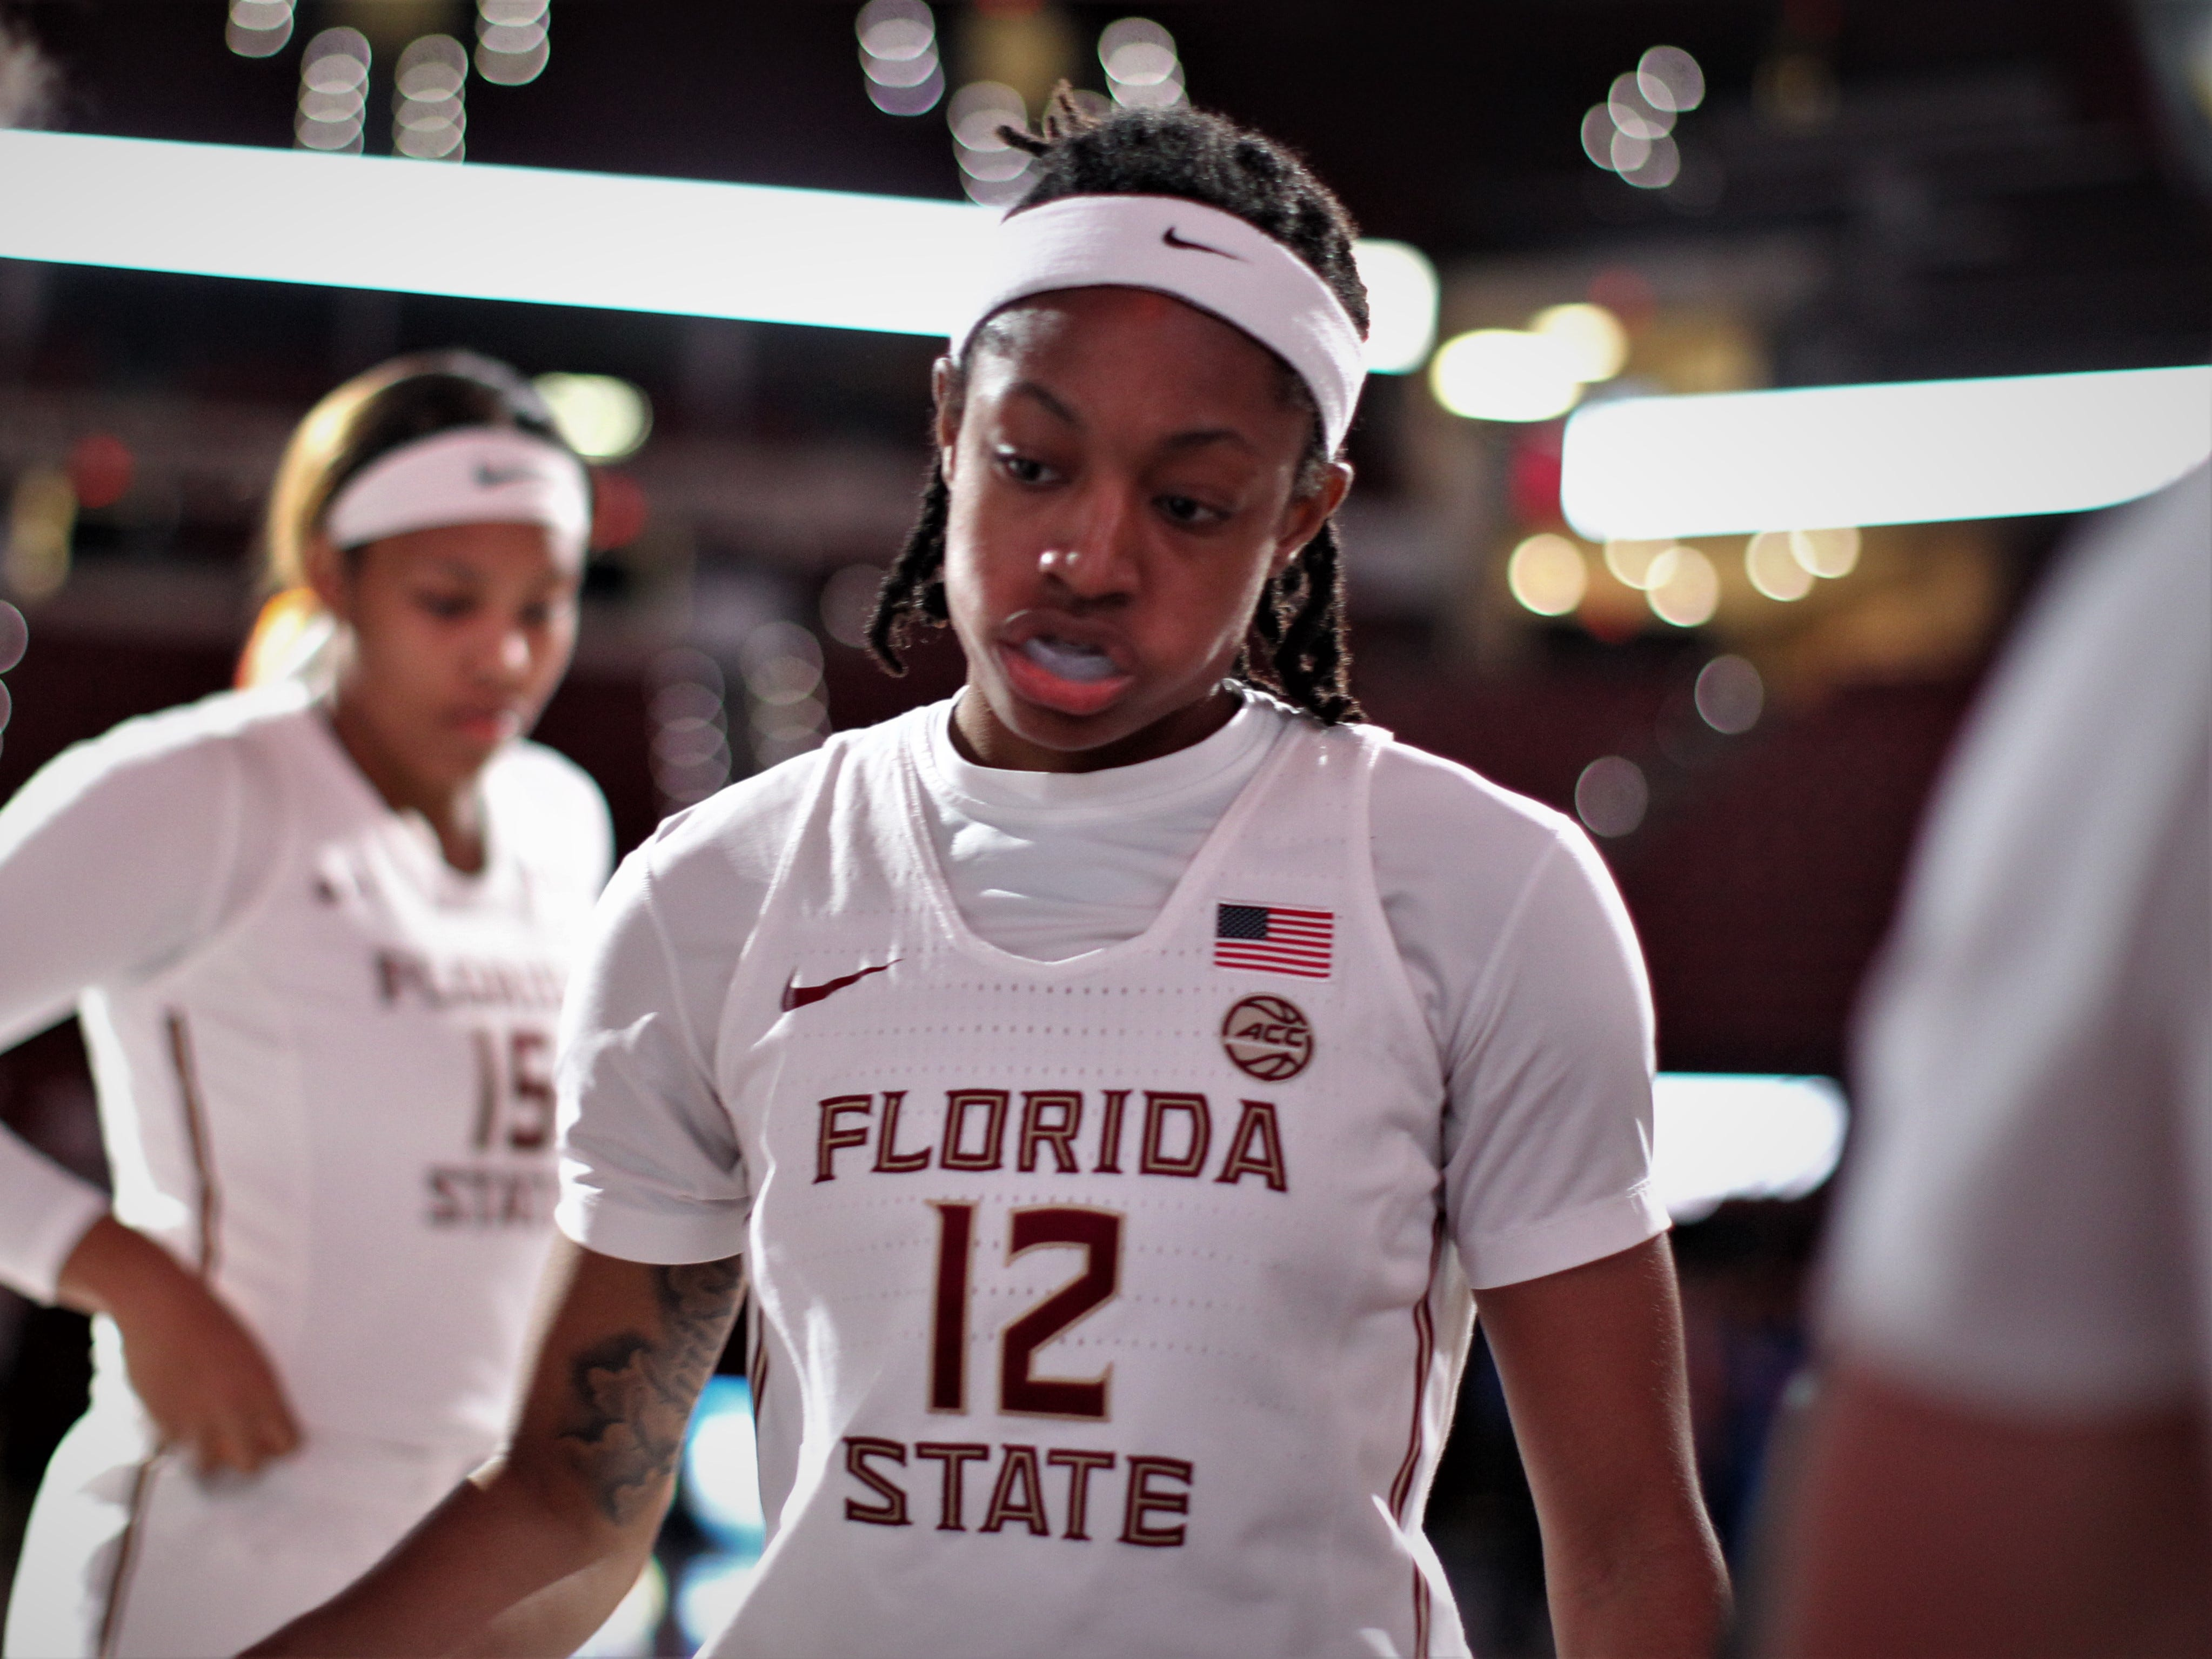 Florida State junior Nicki Ekhomu is introduced as a starter before the Seminoles' game against Florida at the Tucker Civic Center on Nov. 11, 2018.